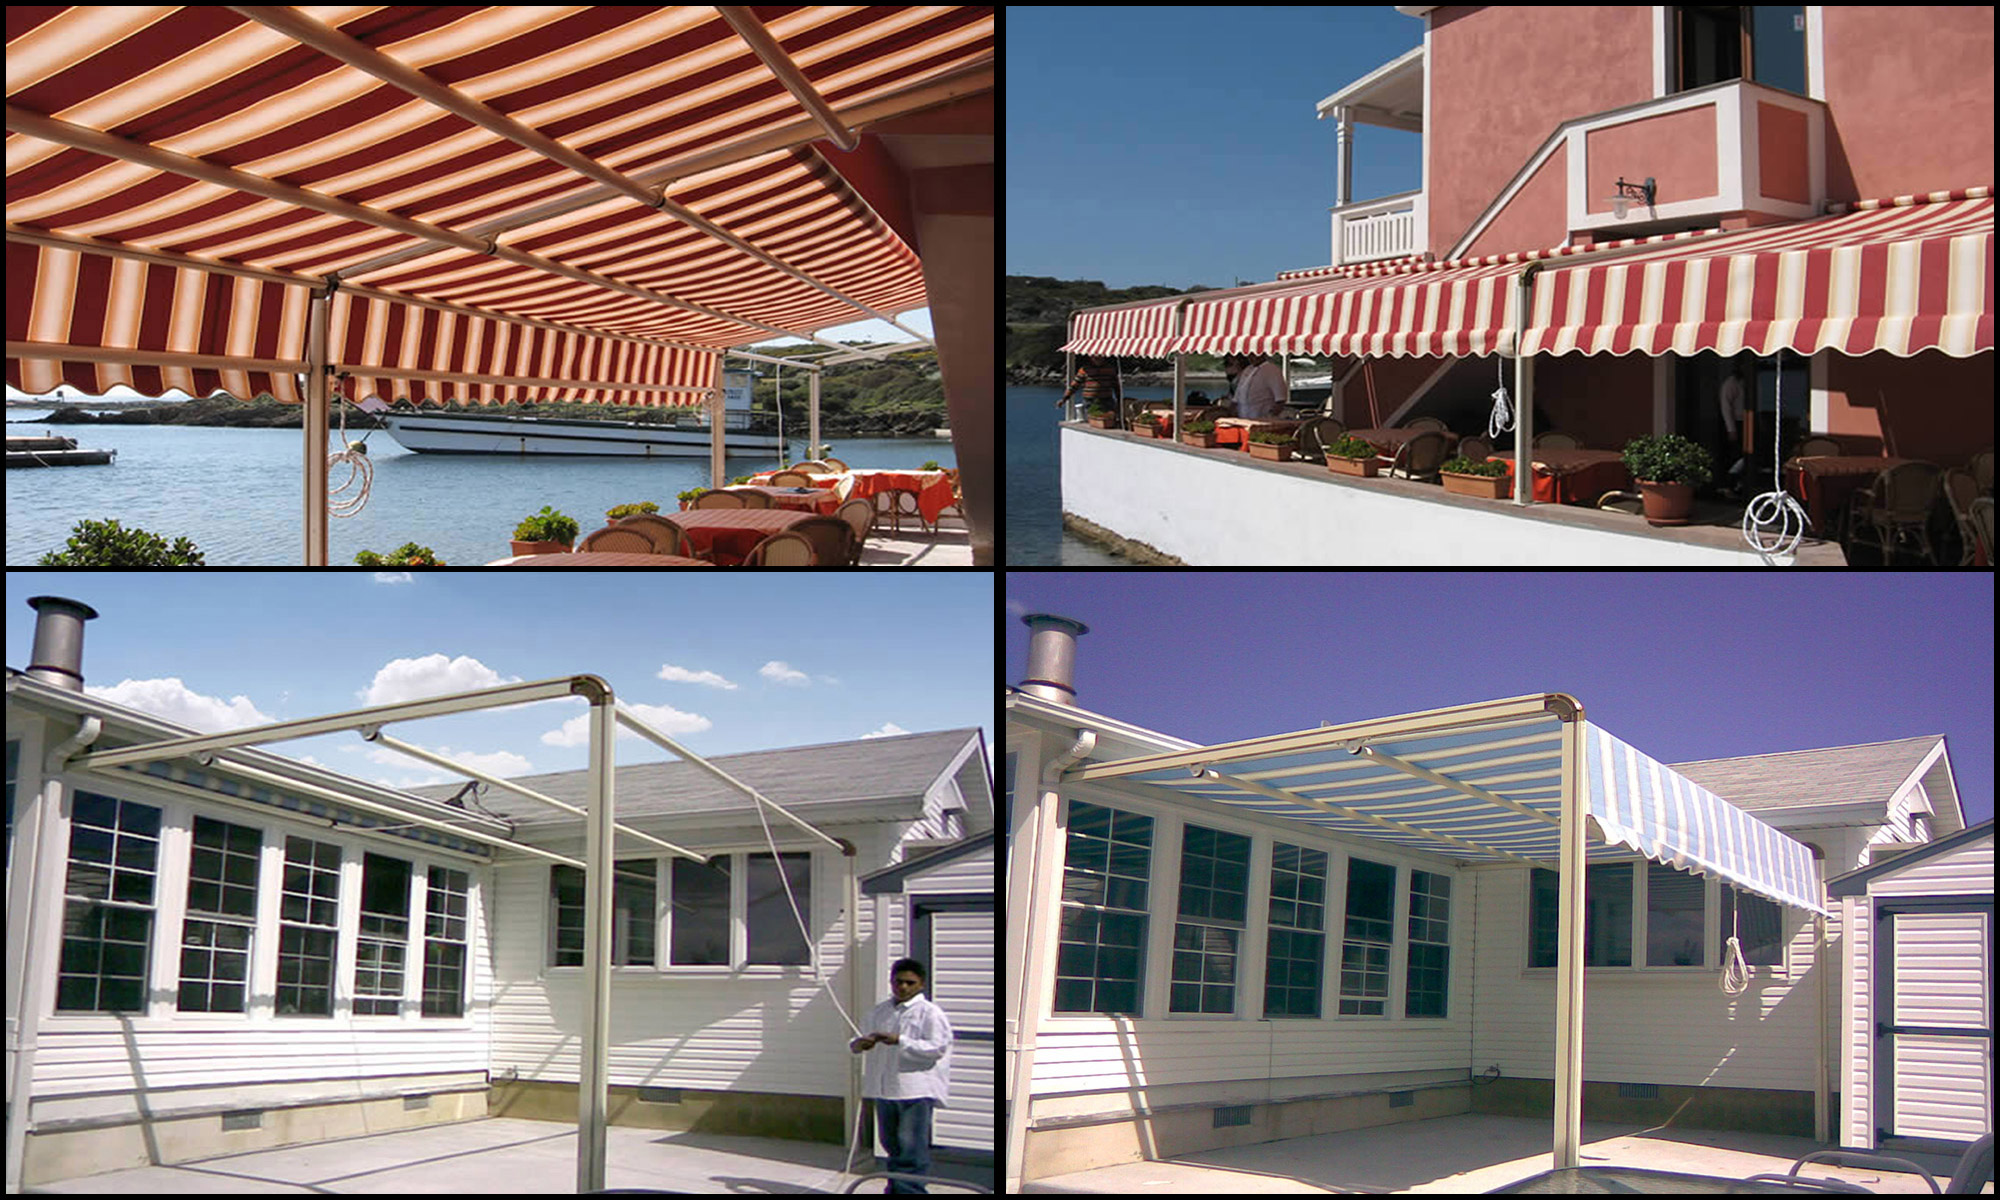 outdoor com magic for www aluminum shade home awnings chrissmith picture blahblahfire wonderful decks u from design deck awning appealing